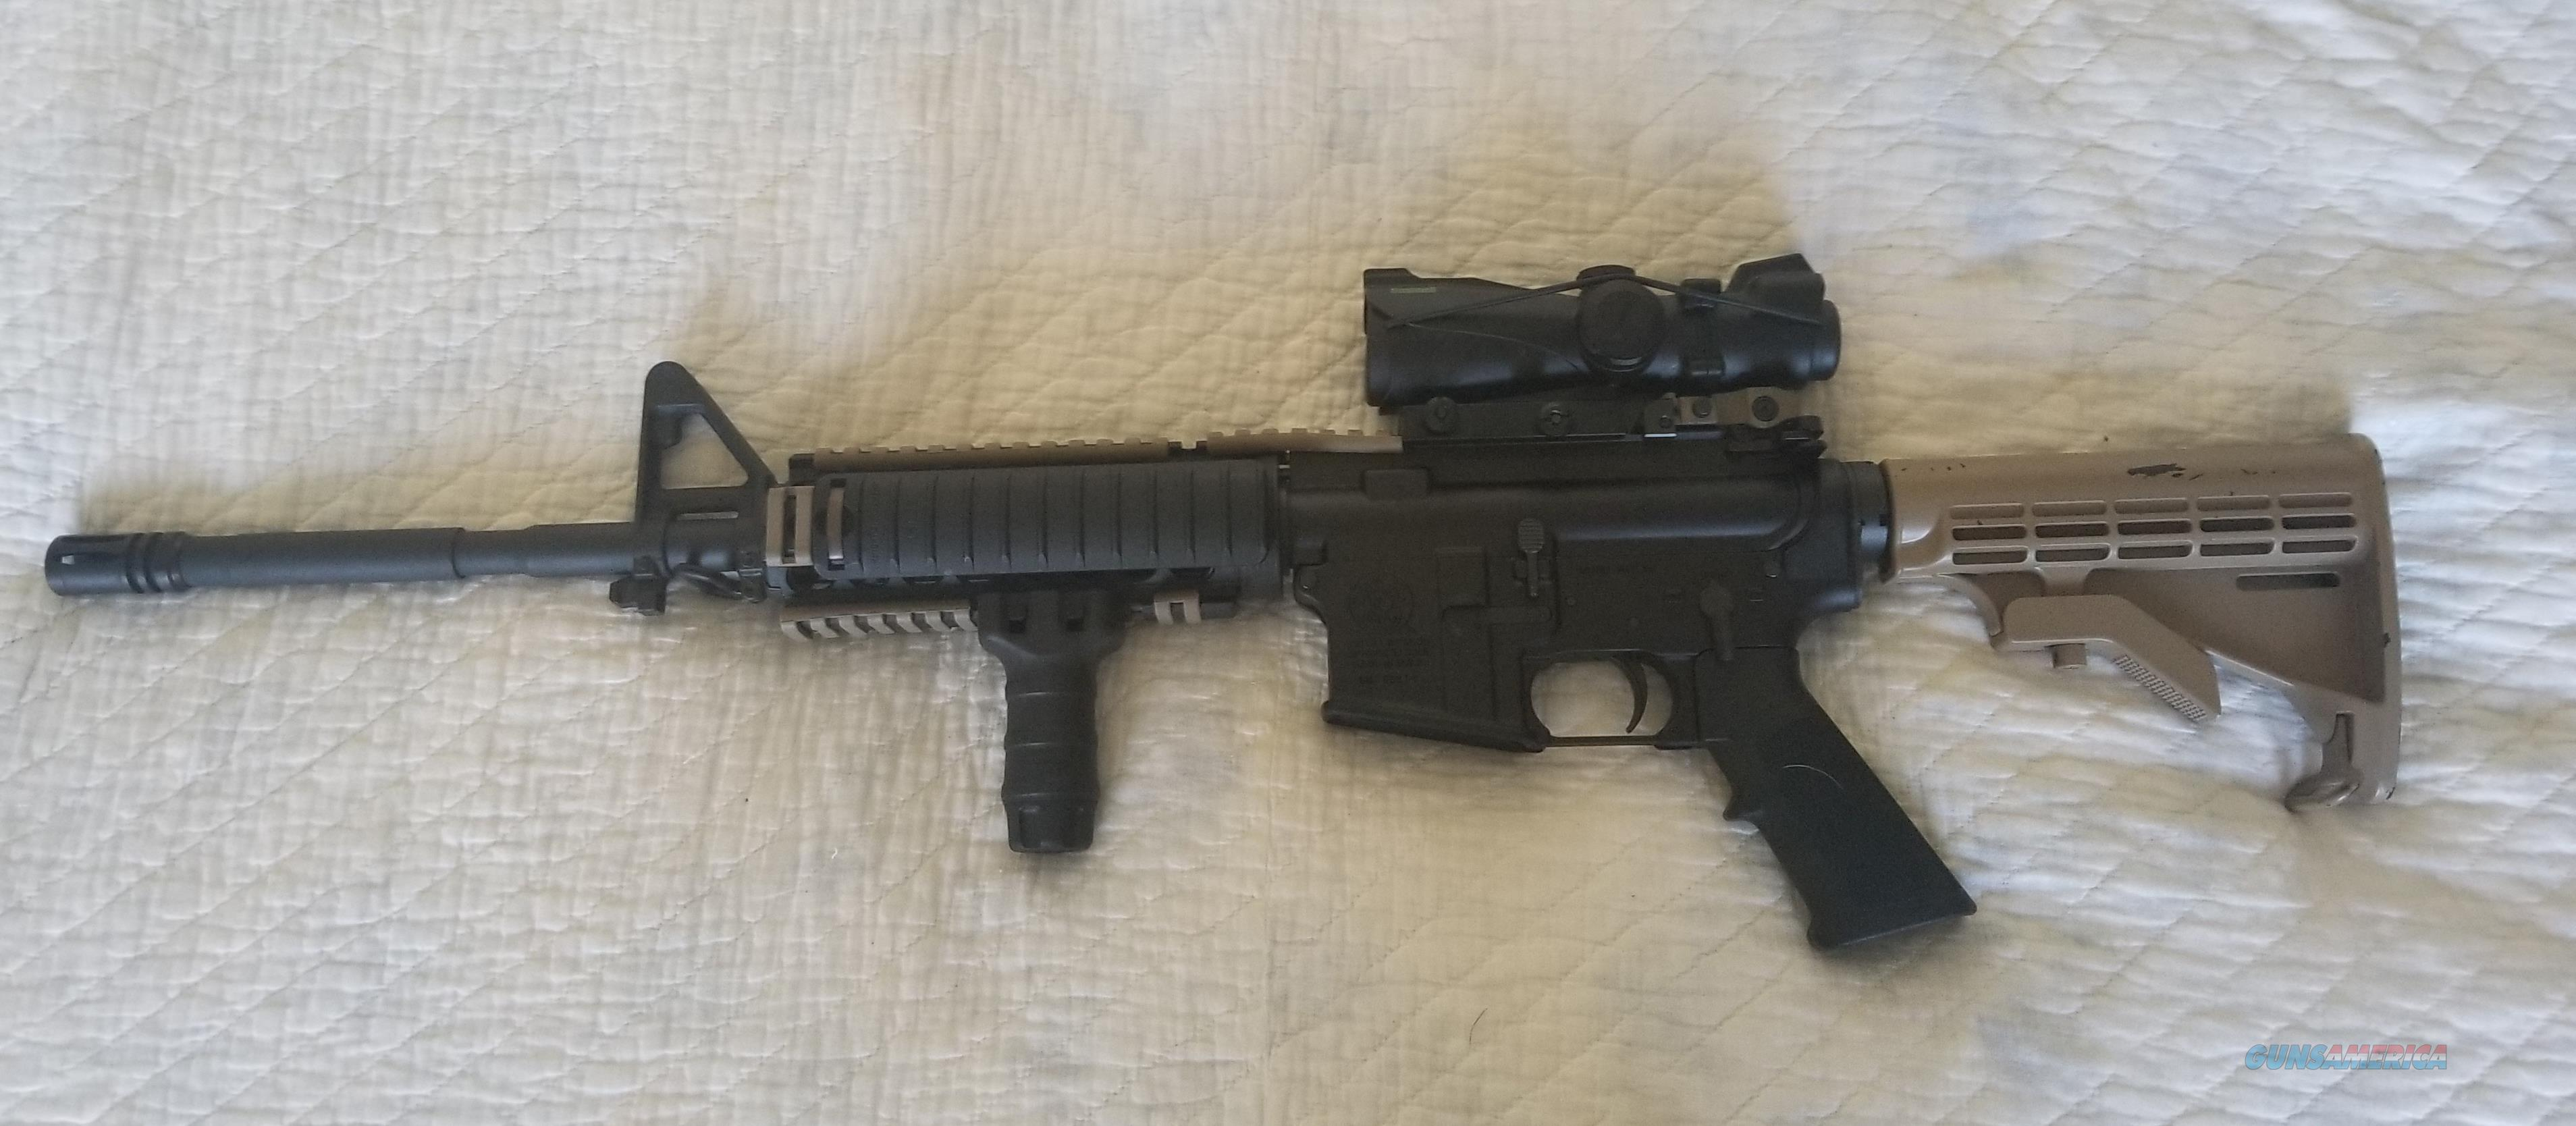 S&W MP15 .223 AR15 rifle with scope, quad rail and foregrip  Guns > Rifles > Smith & Wesson Rifles > M&P